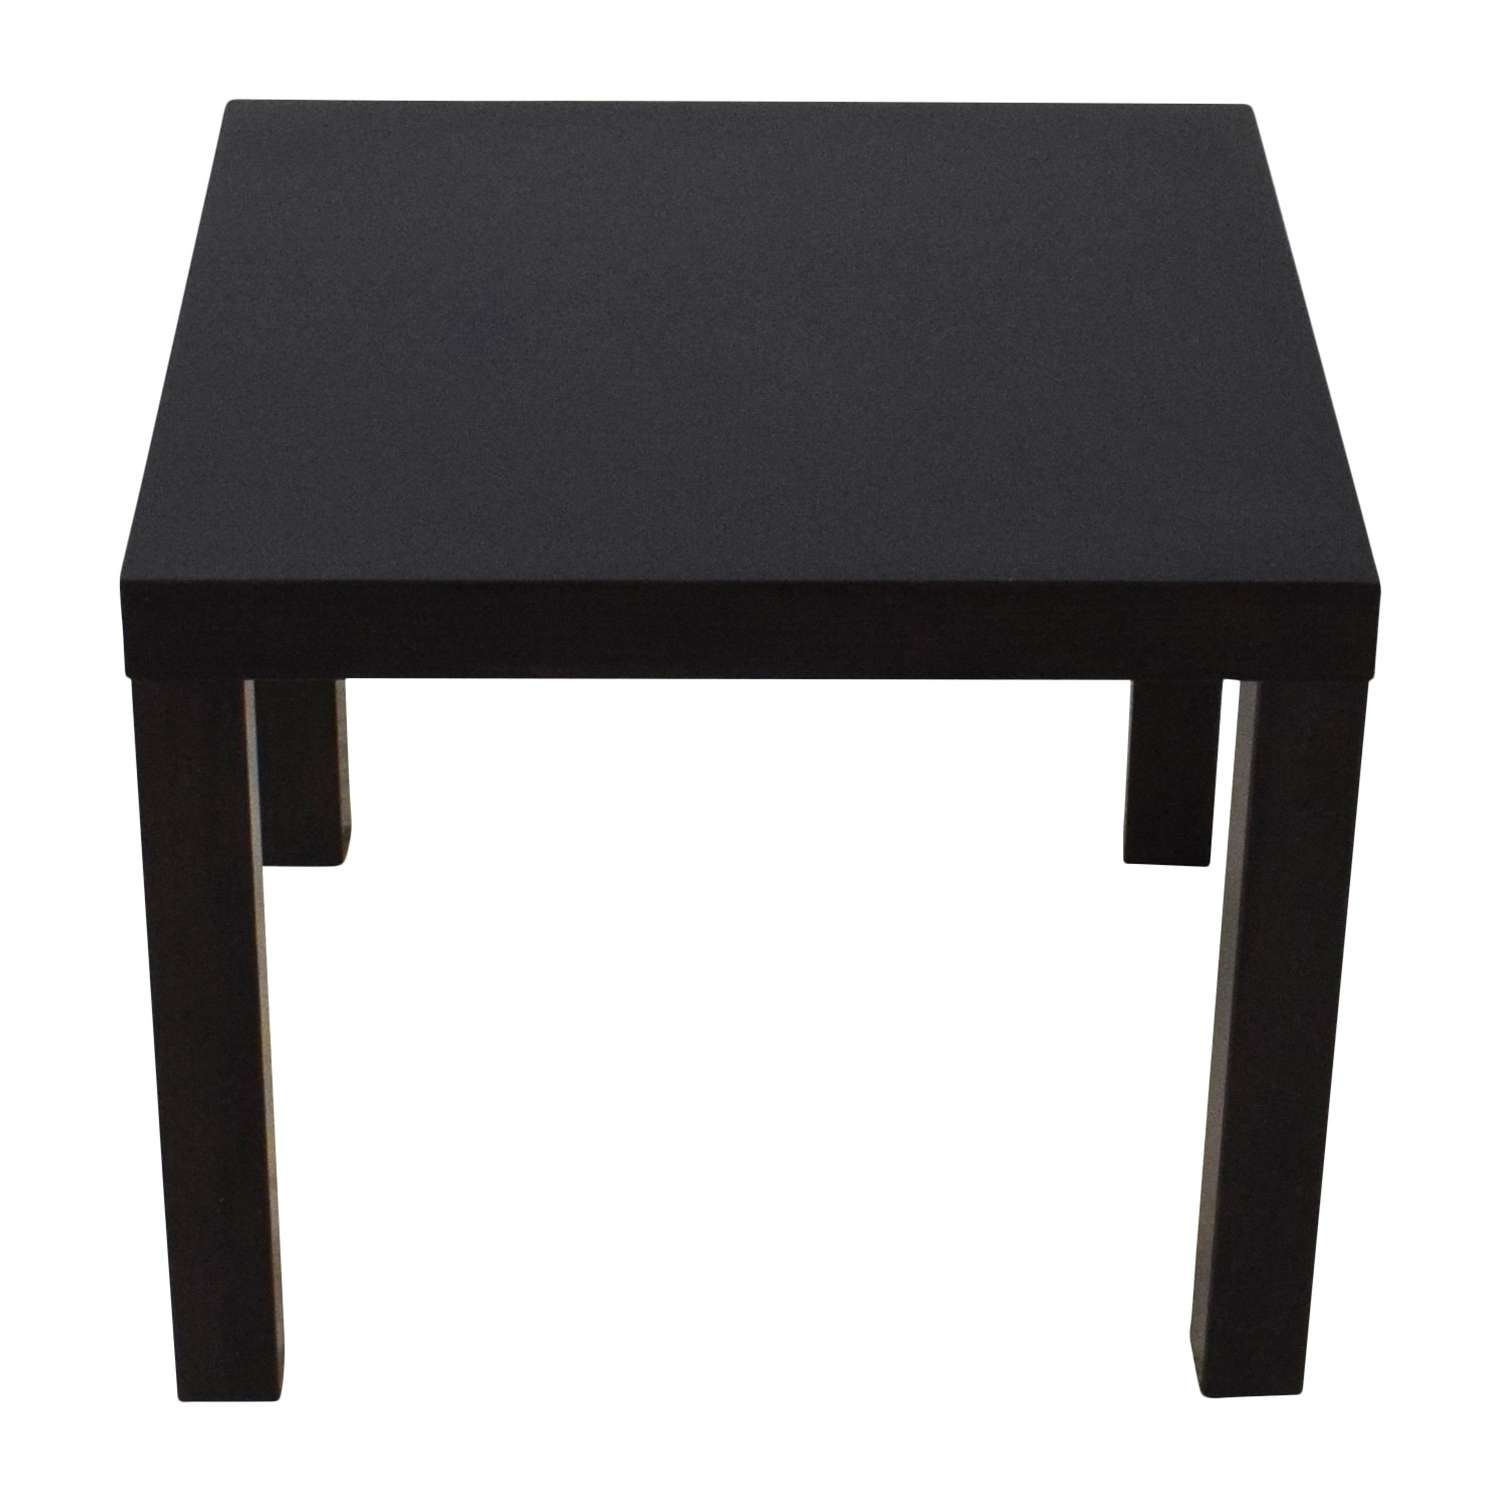 [%famous Black Coffee Tables With 90% Off – Bloomingdales Black Modern Metal Coffee Table / Tables|90% Off – Bloomingdales Black Modern Metal Coffee Table / Tables Within Fashionable Black Coffee Tables%] (View 8 of 20)